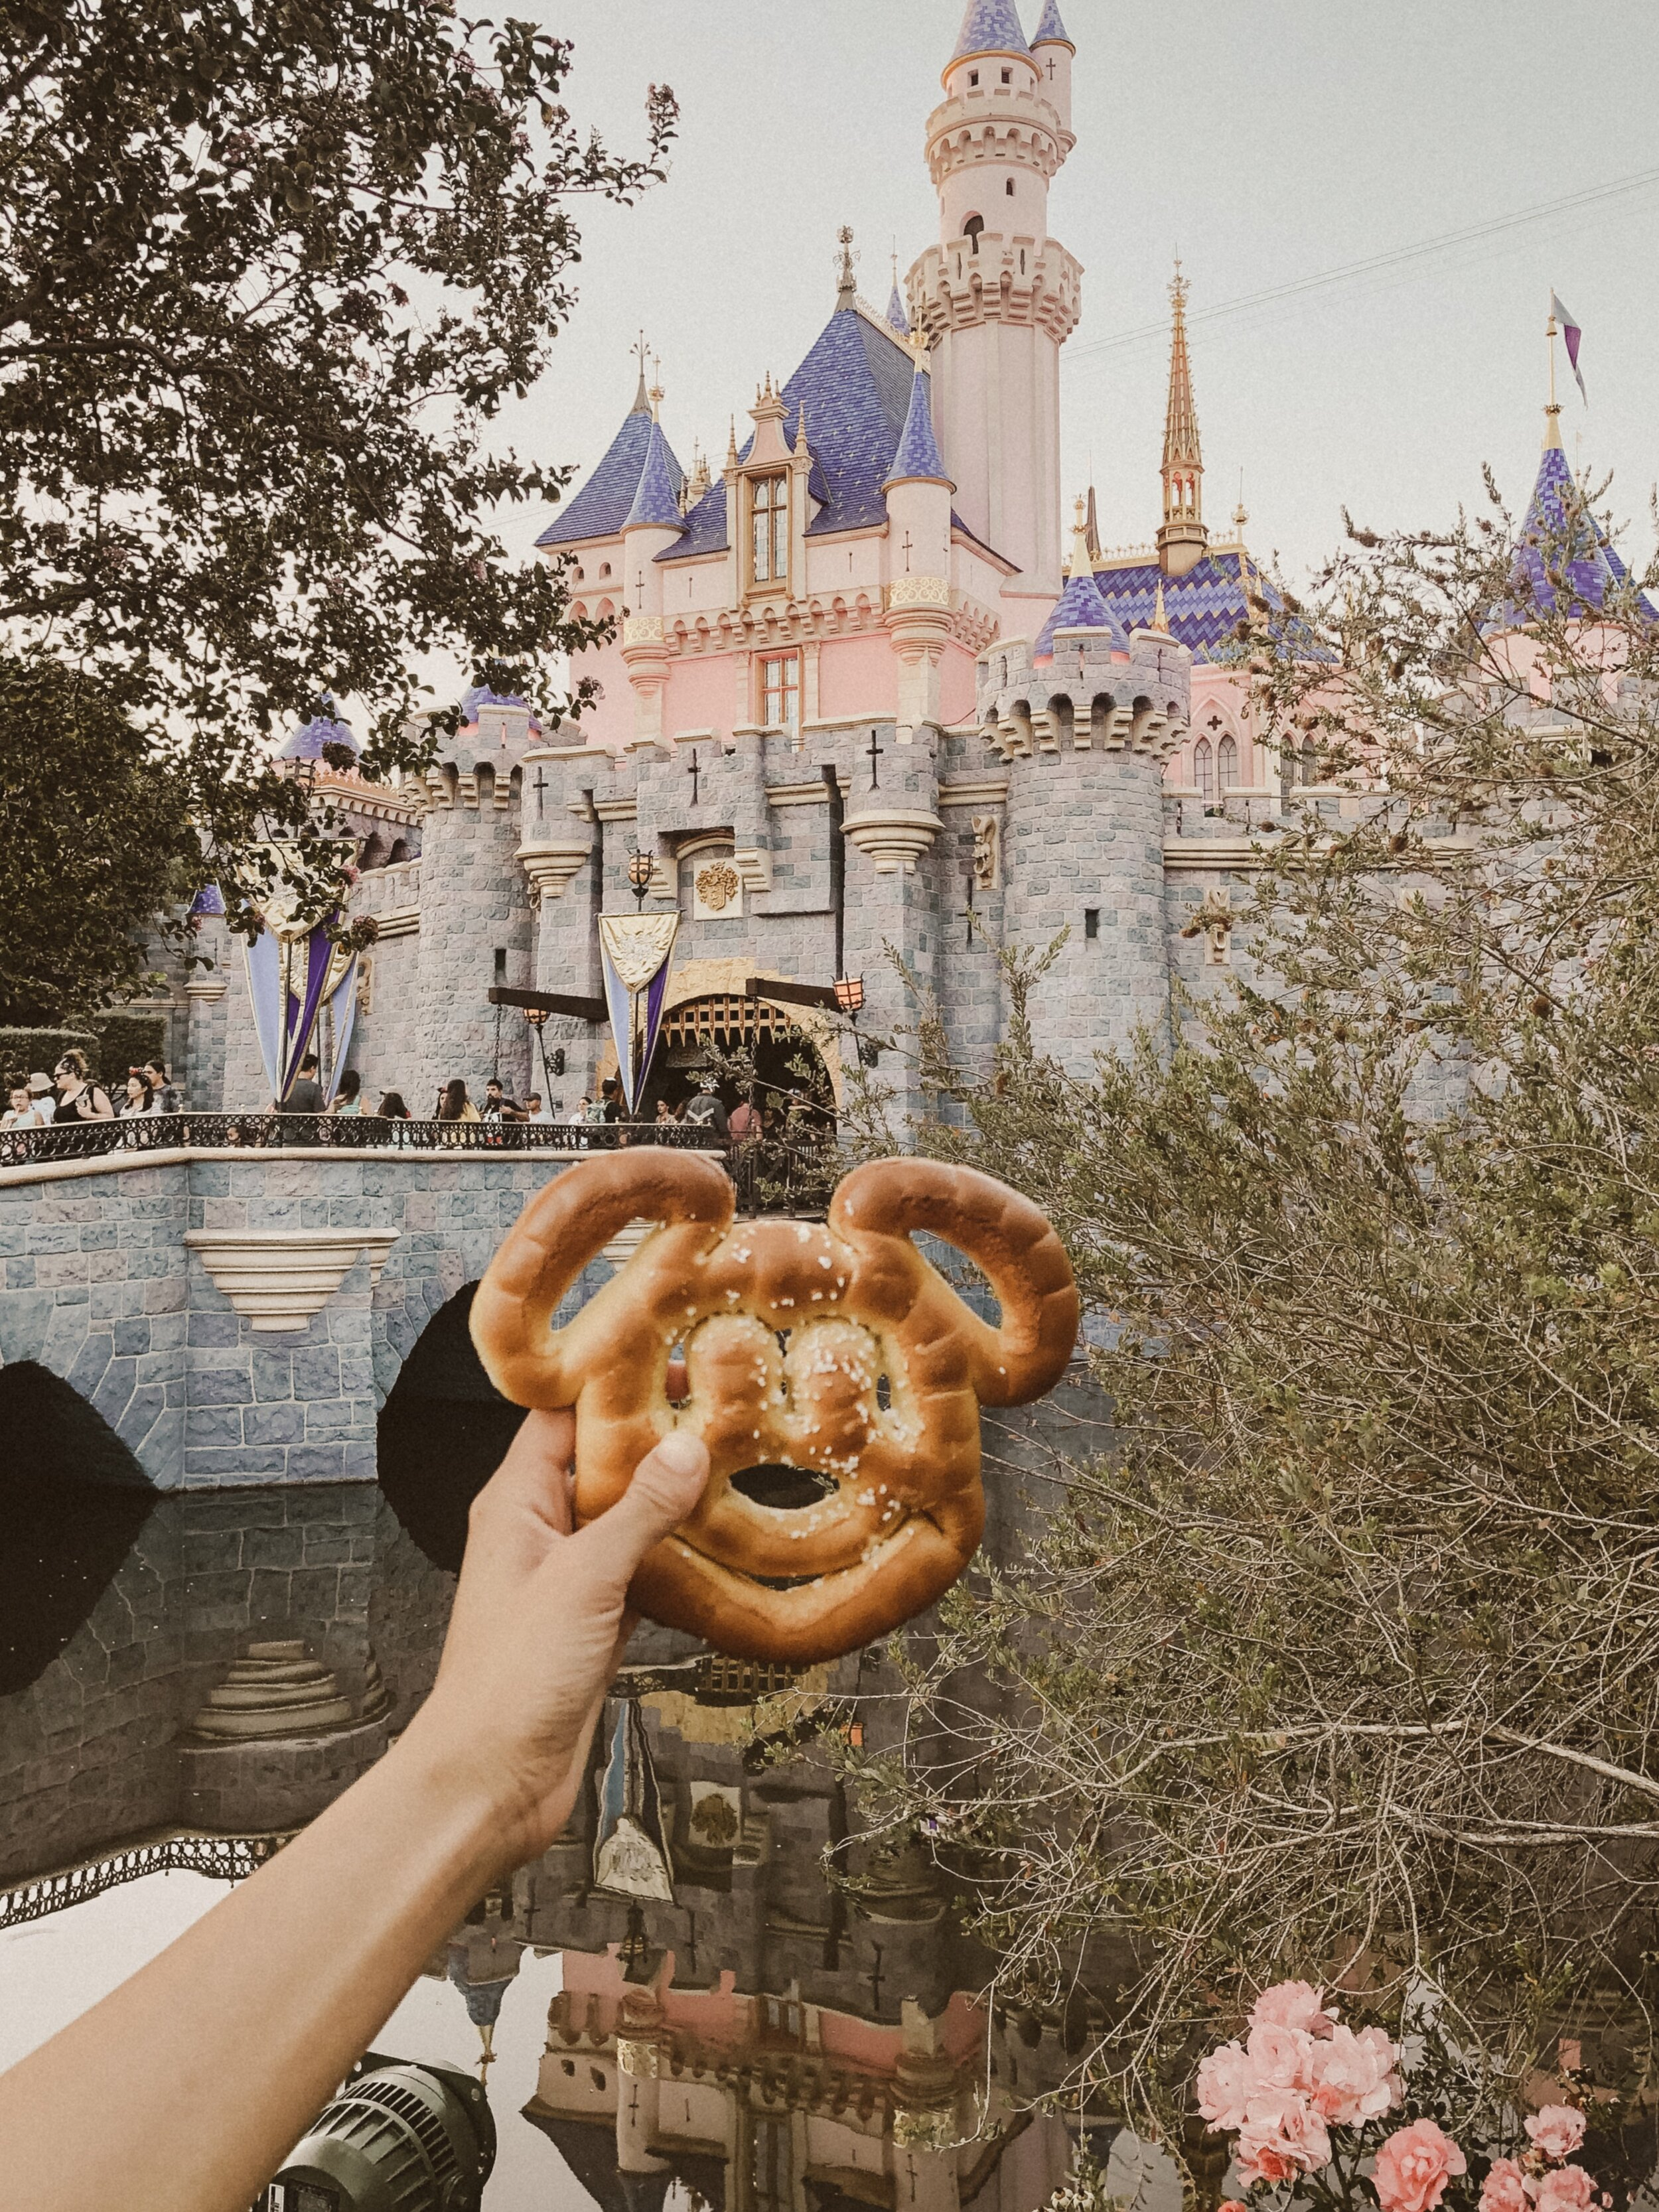 starting it off with a classic, the mickey mouse pretzel. no egg or dairy, which means it's totally vegan friendly. a favorite of mine for sure!